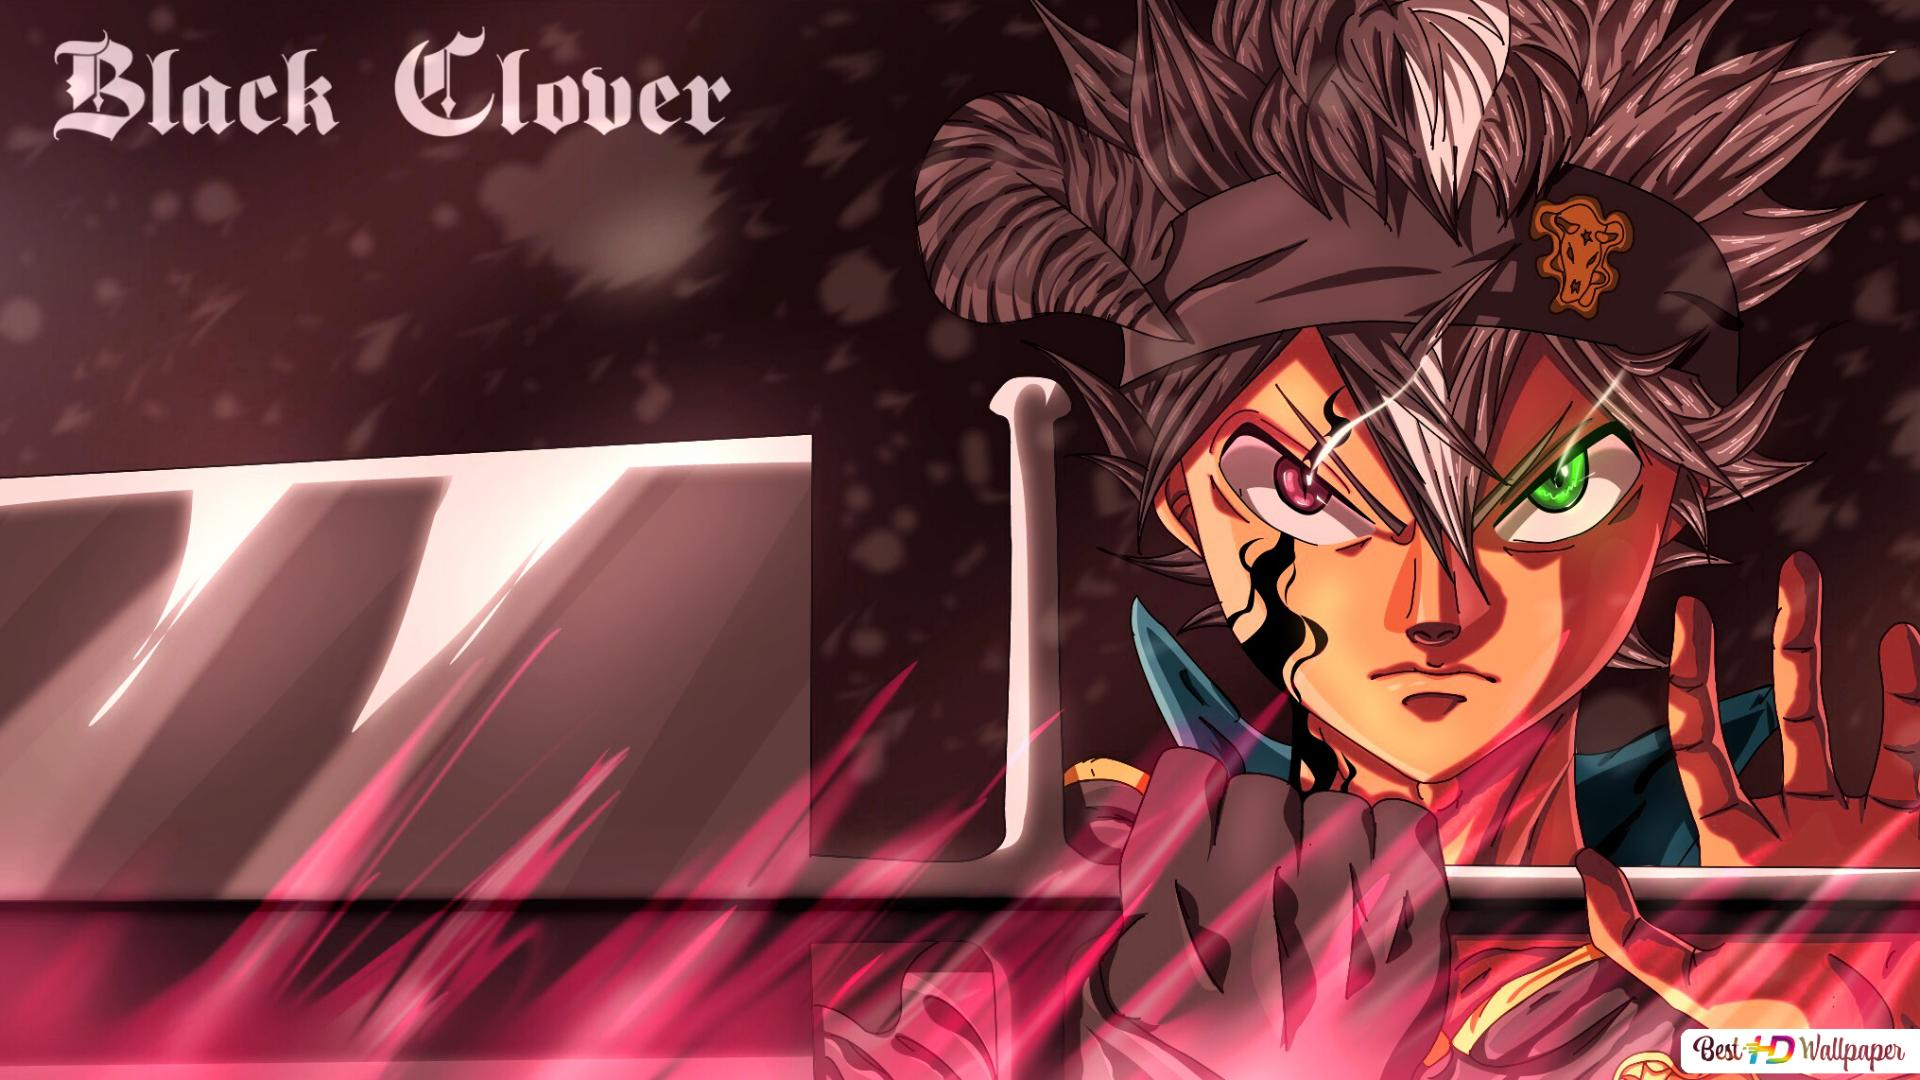 Black Clover Wallpaper 1080p Wall Giftwatches Co